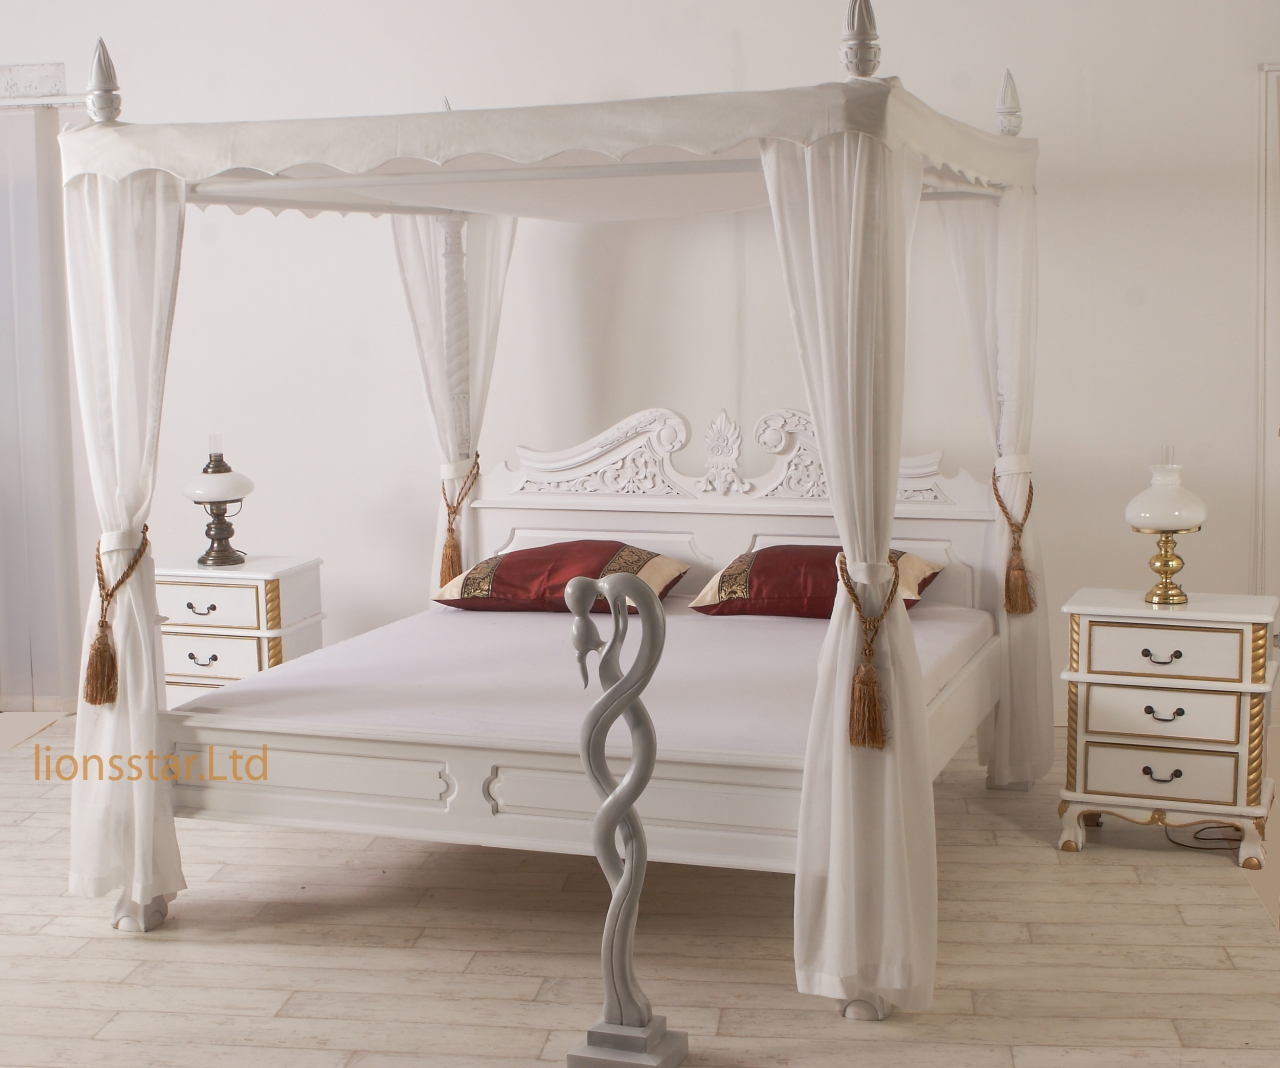 barock himmelbett wei mahagoni lionsstar gmbh. Black Bedroom Furniture Sets. Home Design Ideas